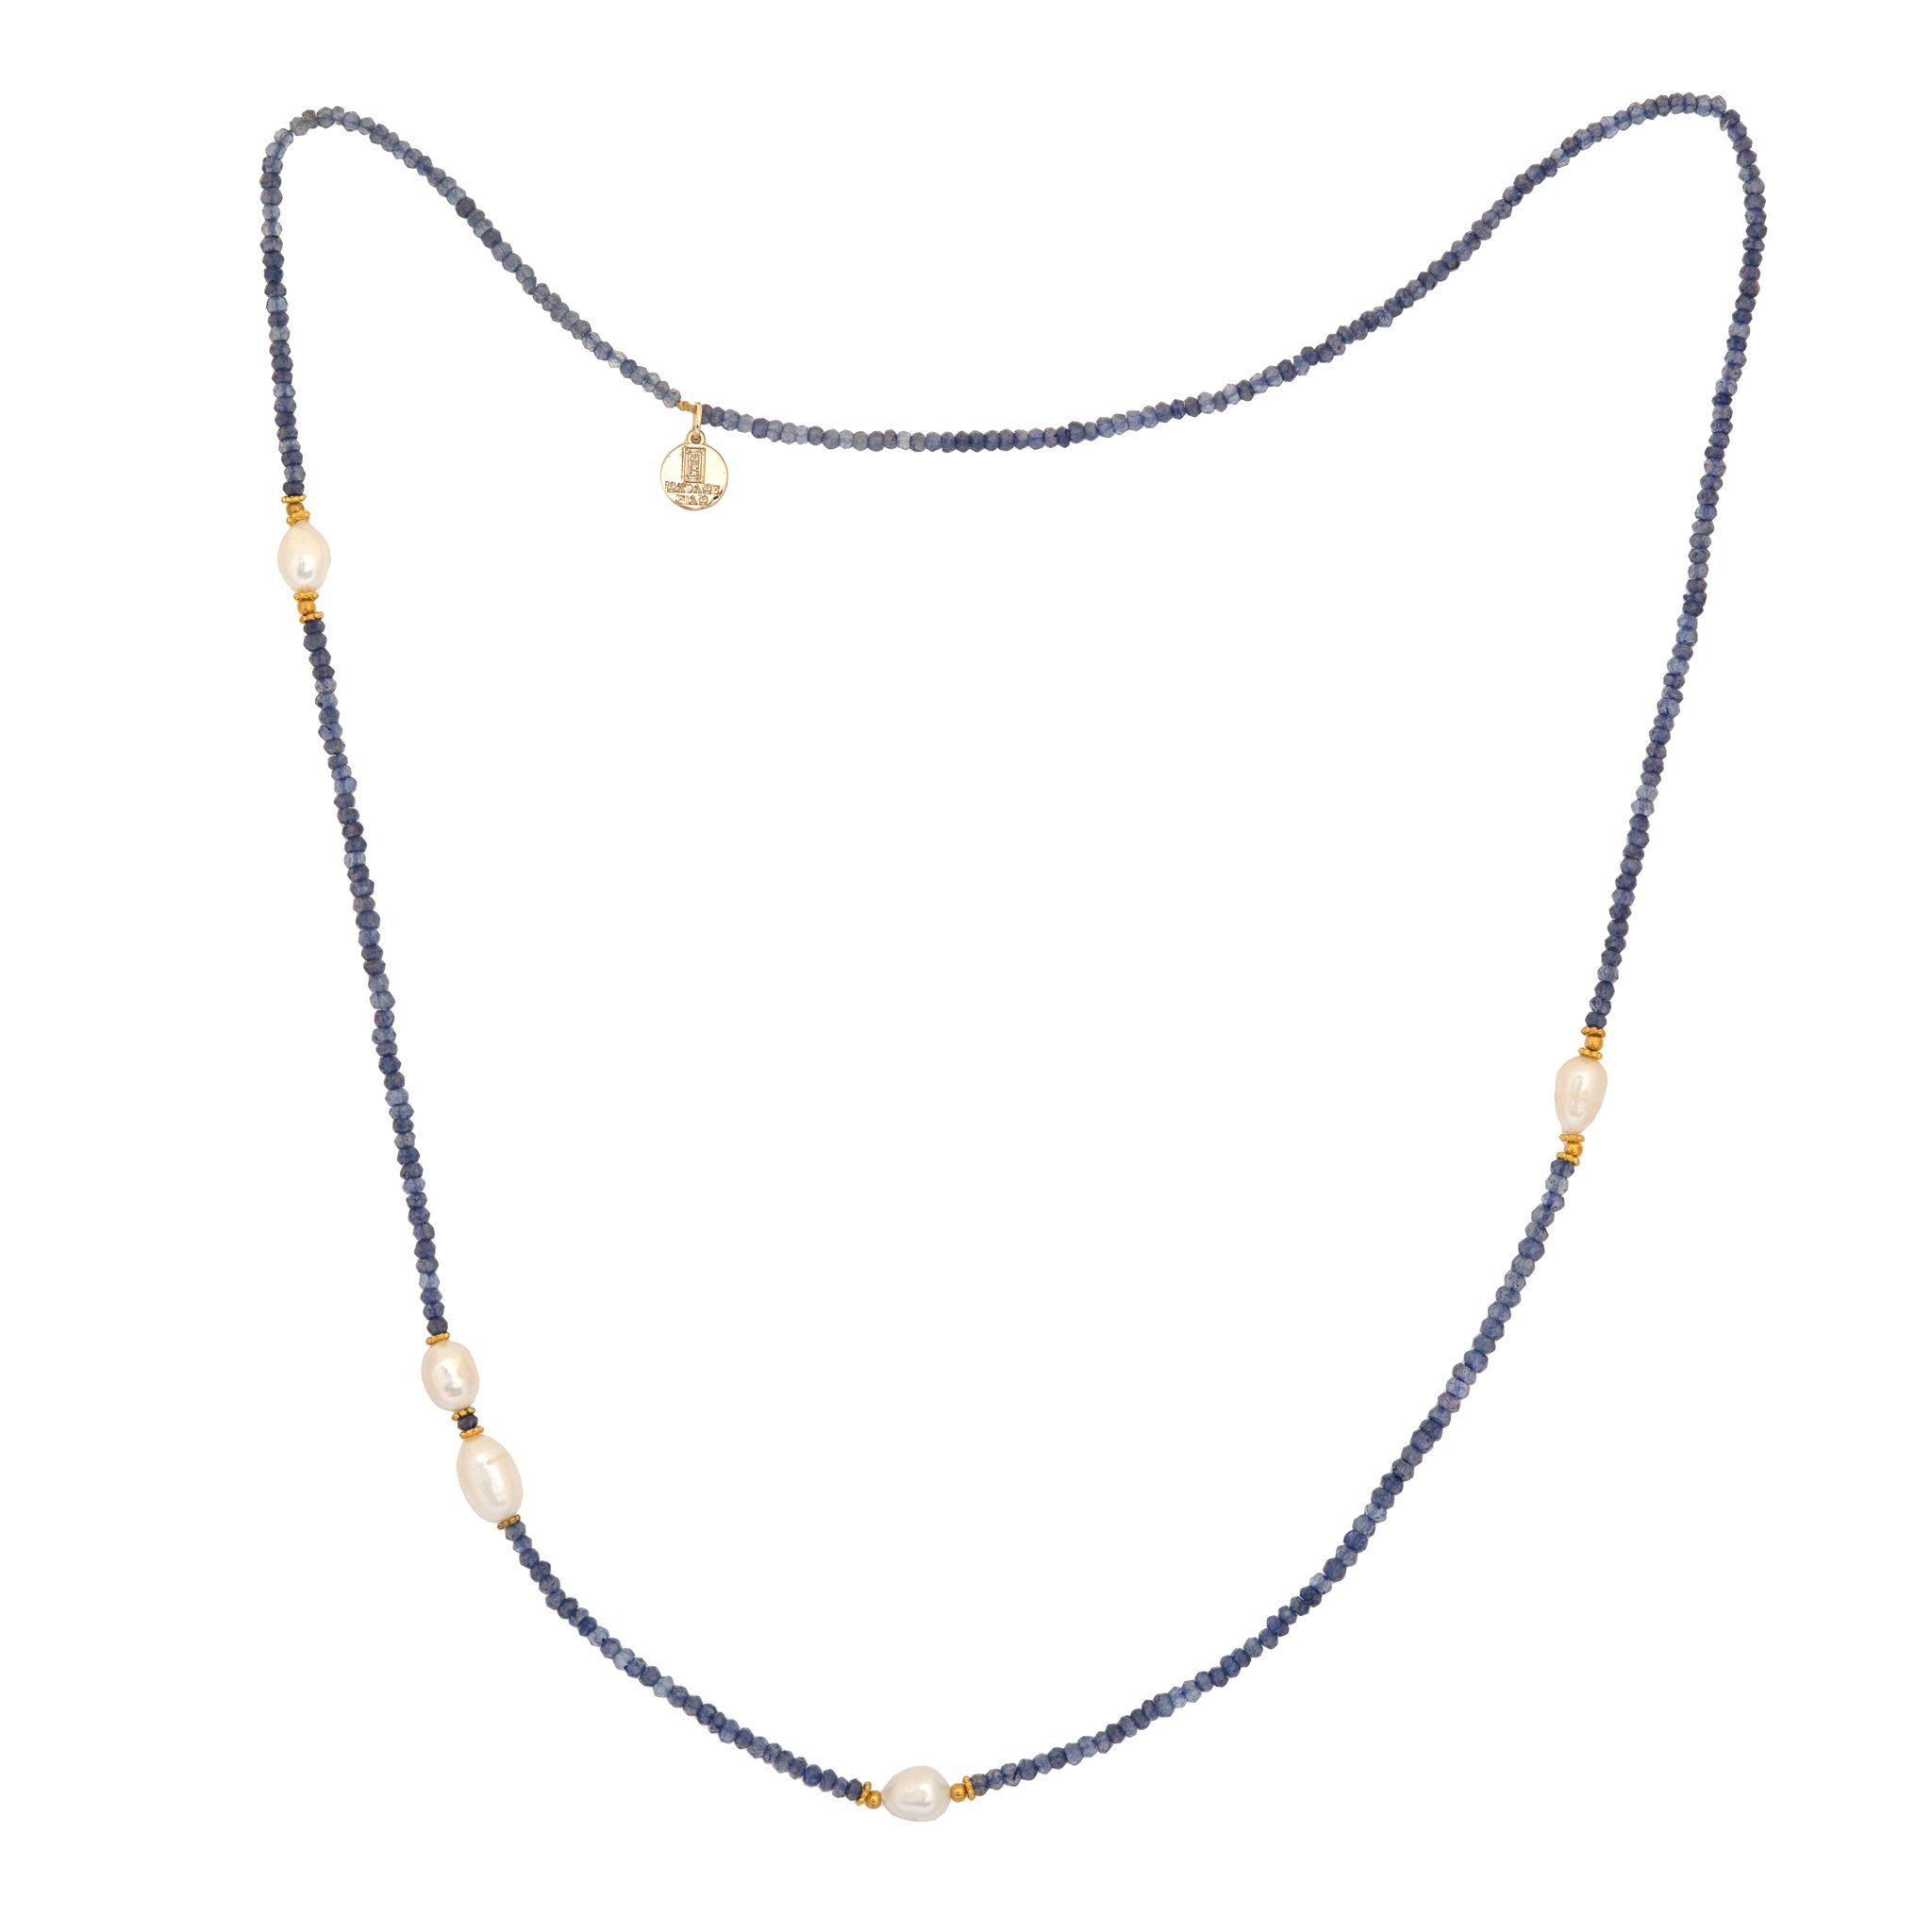 KIMUKA pearls and iolite necklace - MadamSiam